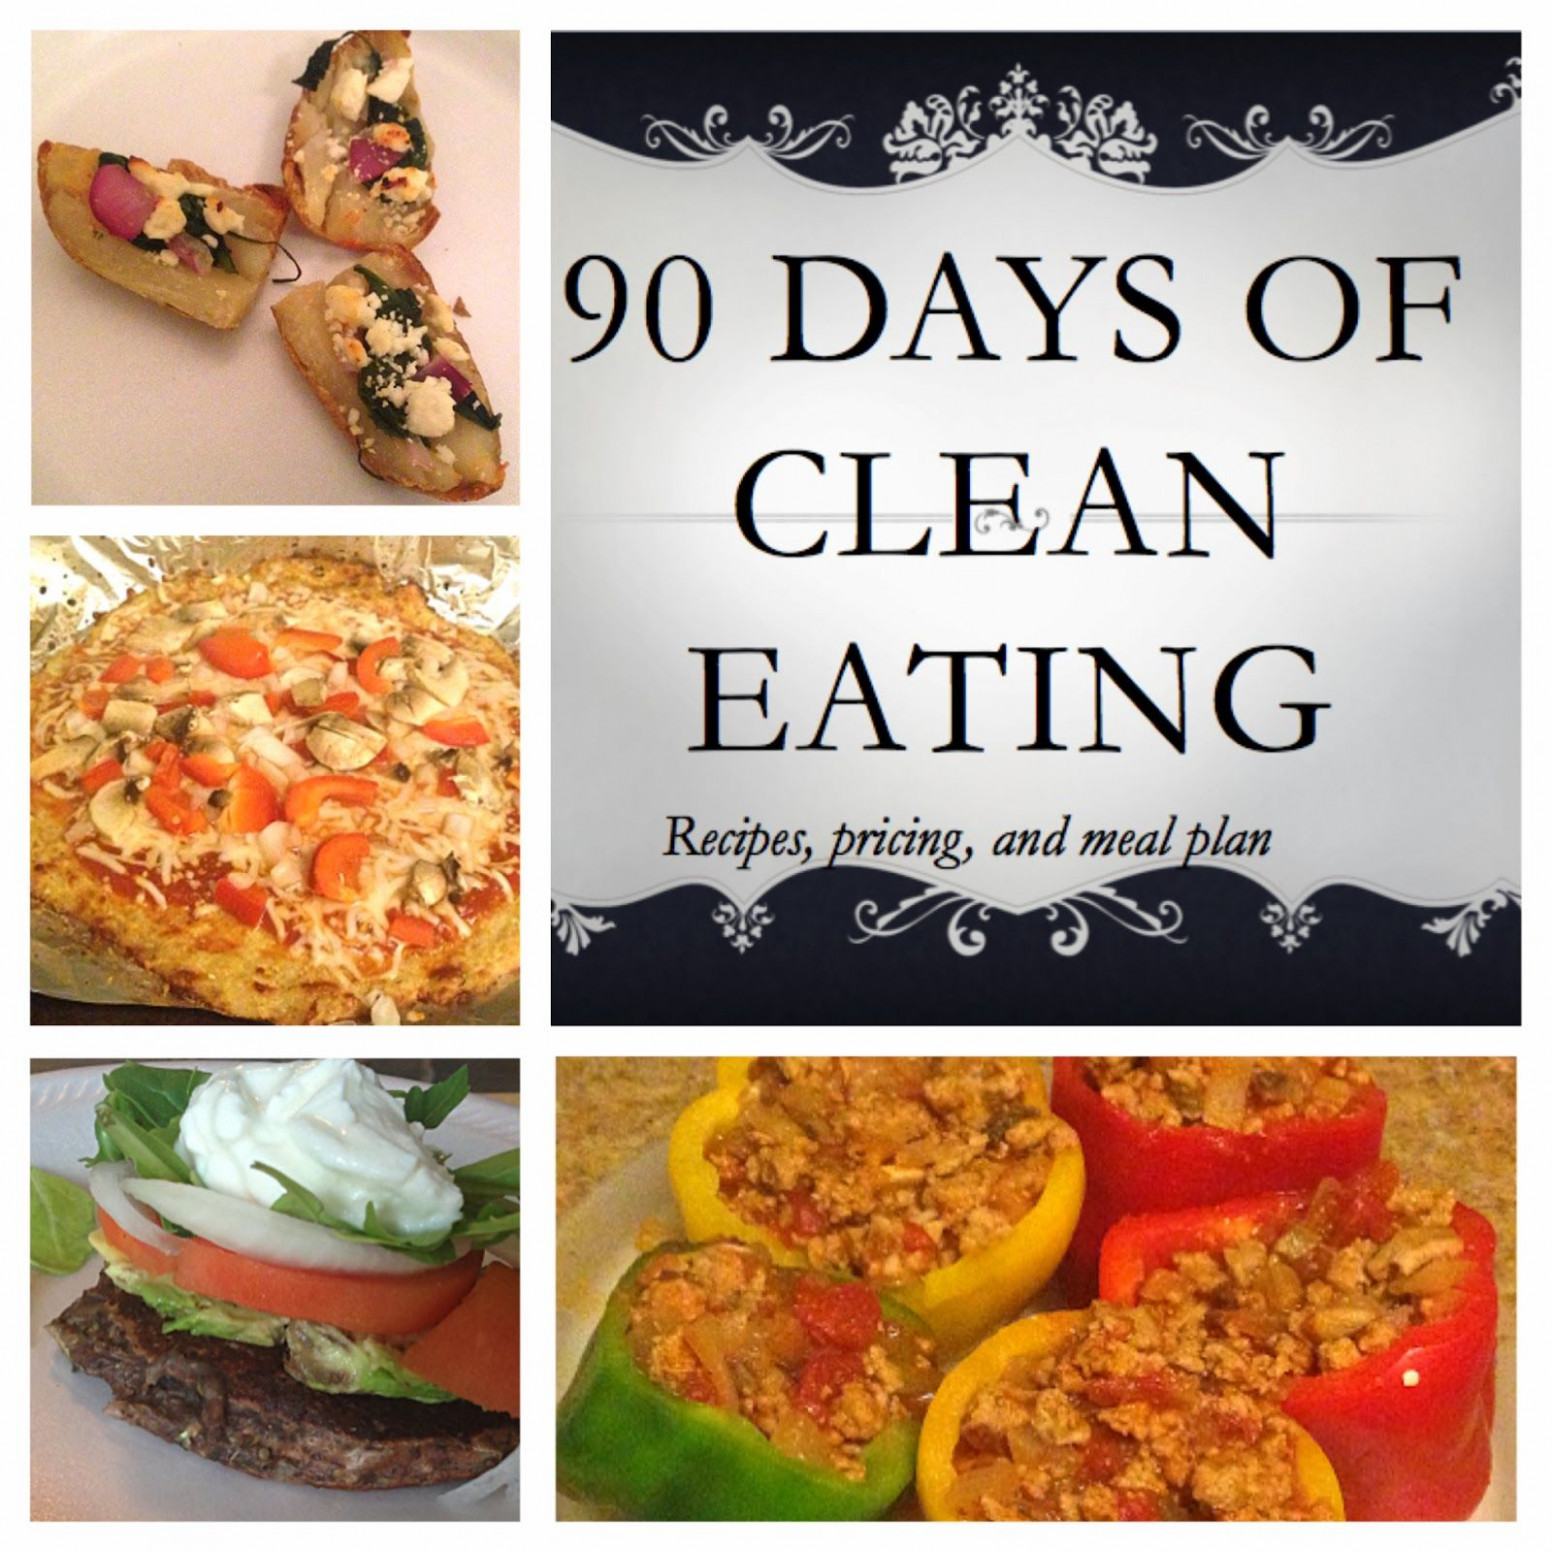 12 Day Clean Eating Meal Plans With Recipes And Pricing ..